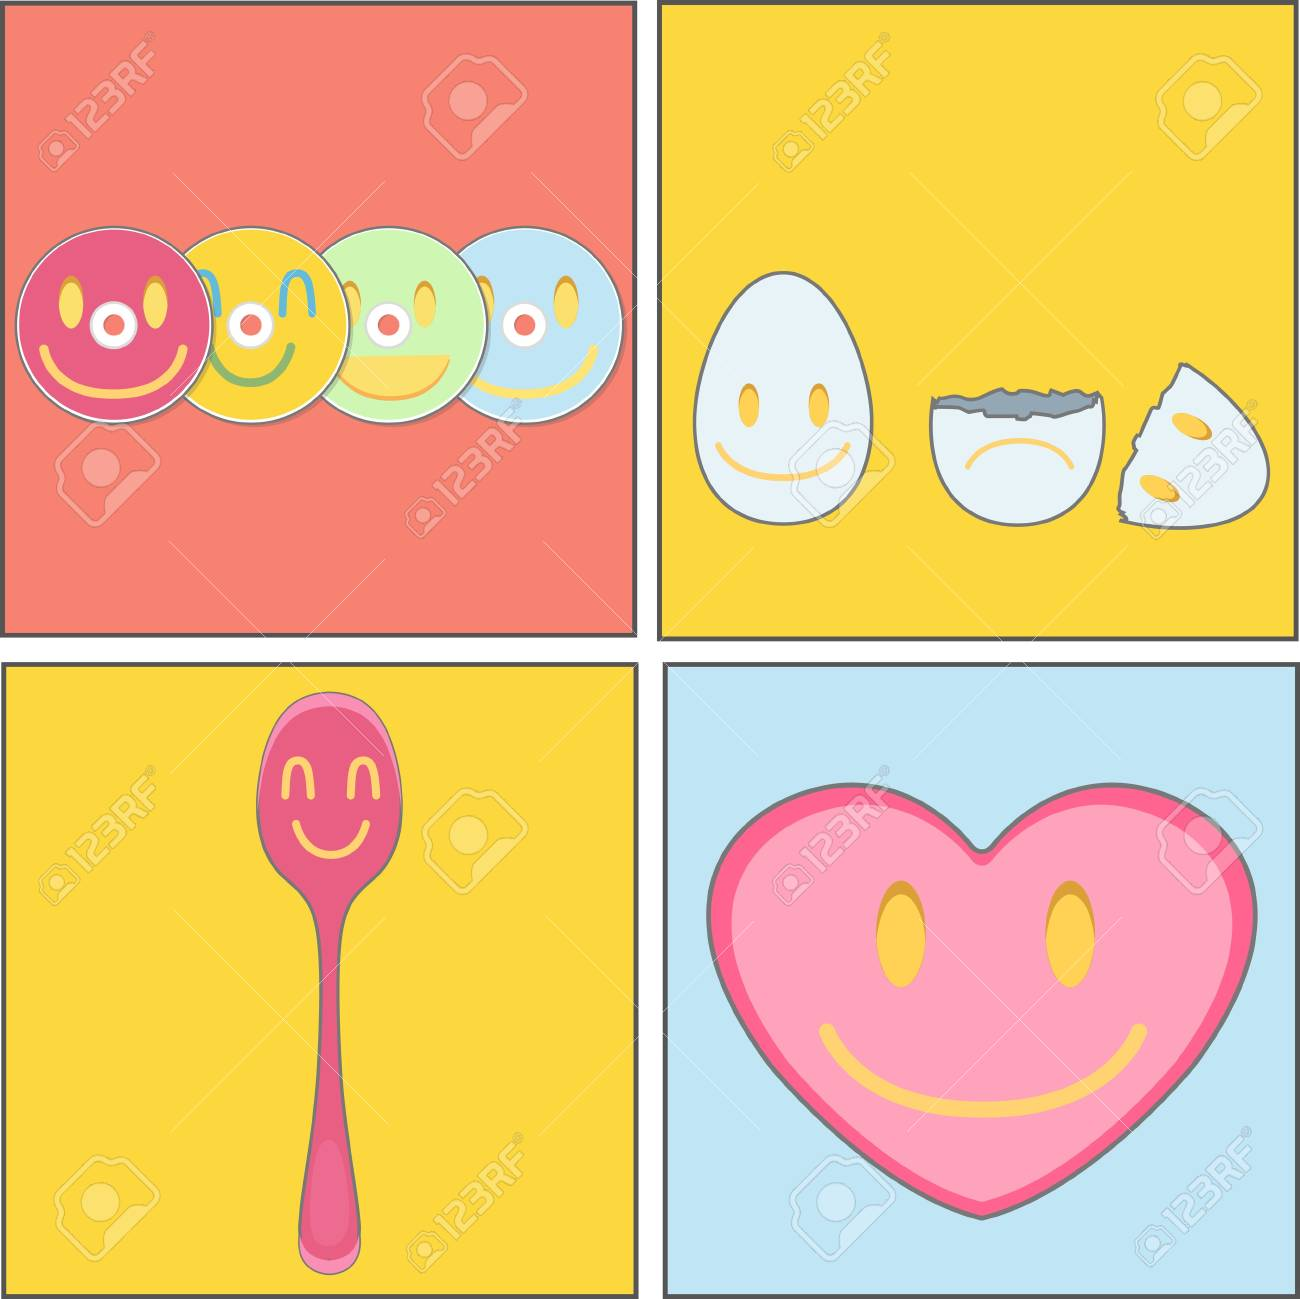 collection of CD, spoon, heart and egg Stock Vector - 18904298